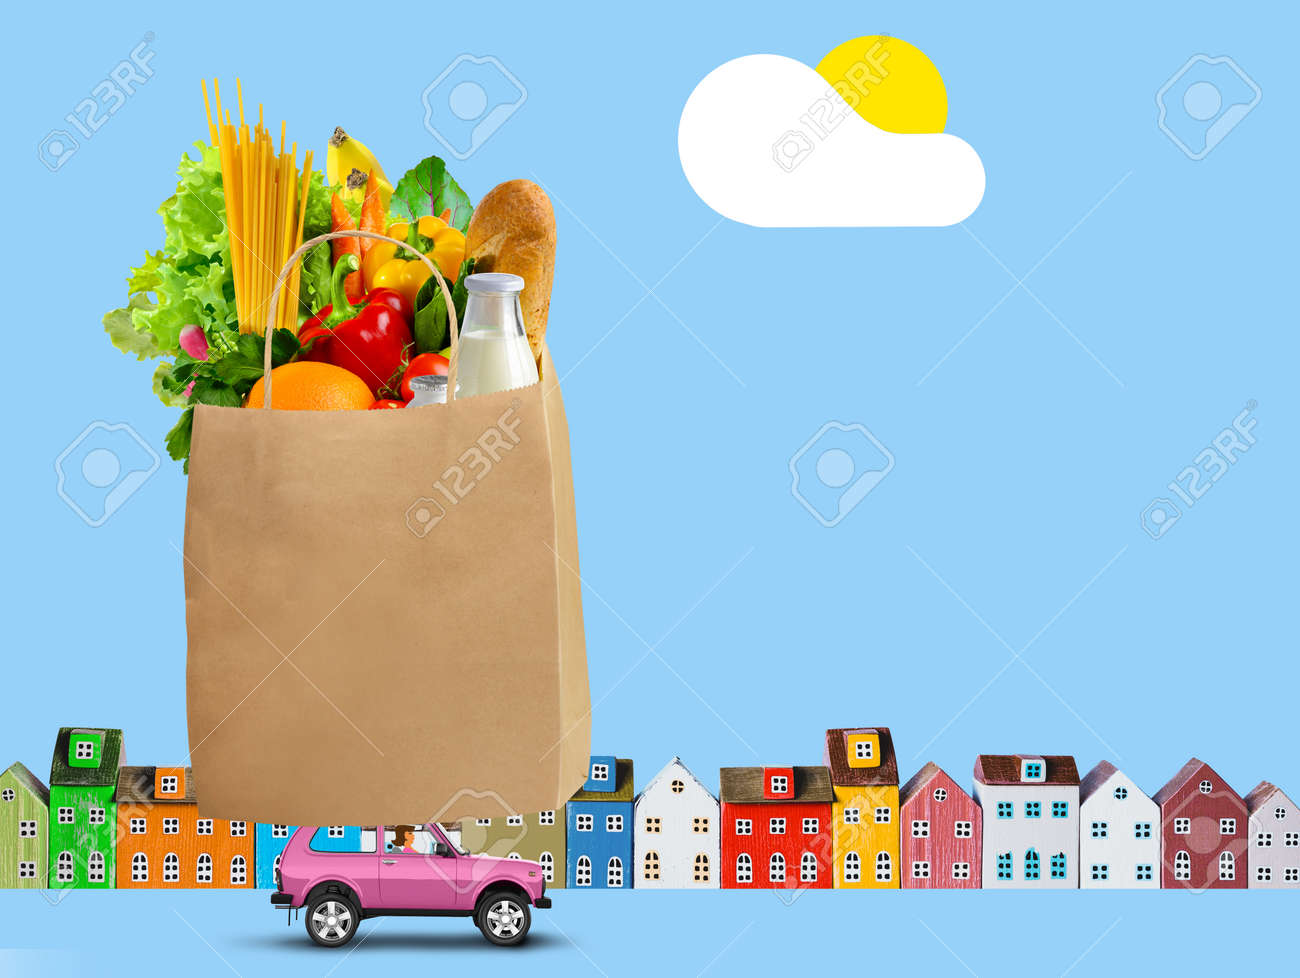 Pink car with shopping paper bag with groceries on the roof on city background - 169711074